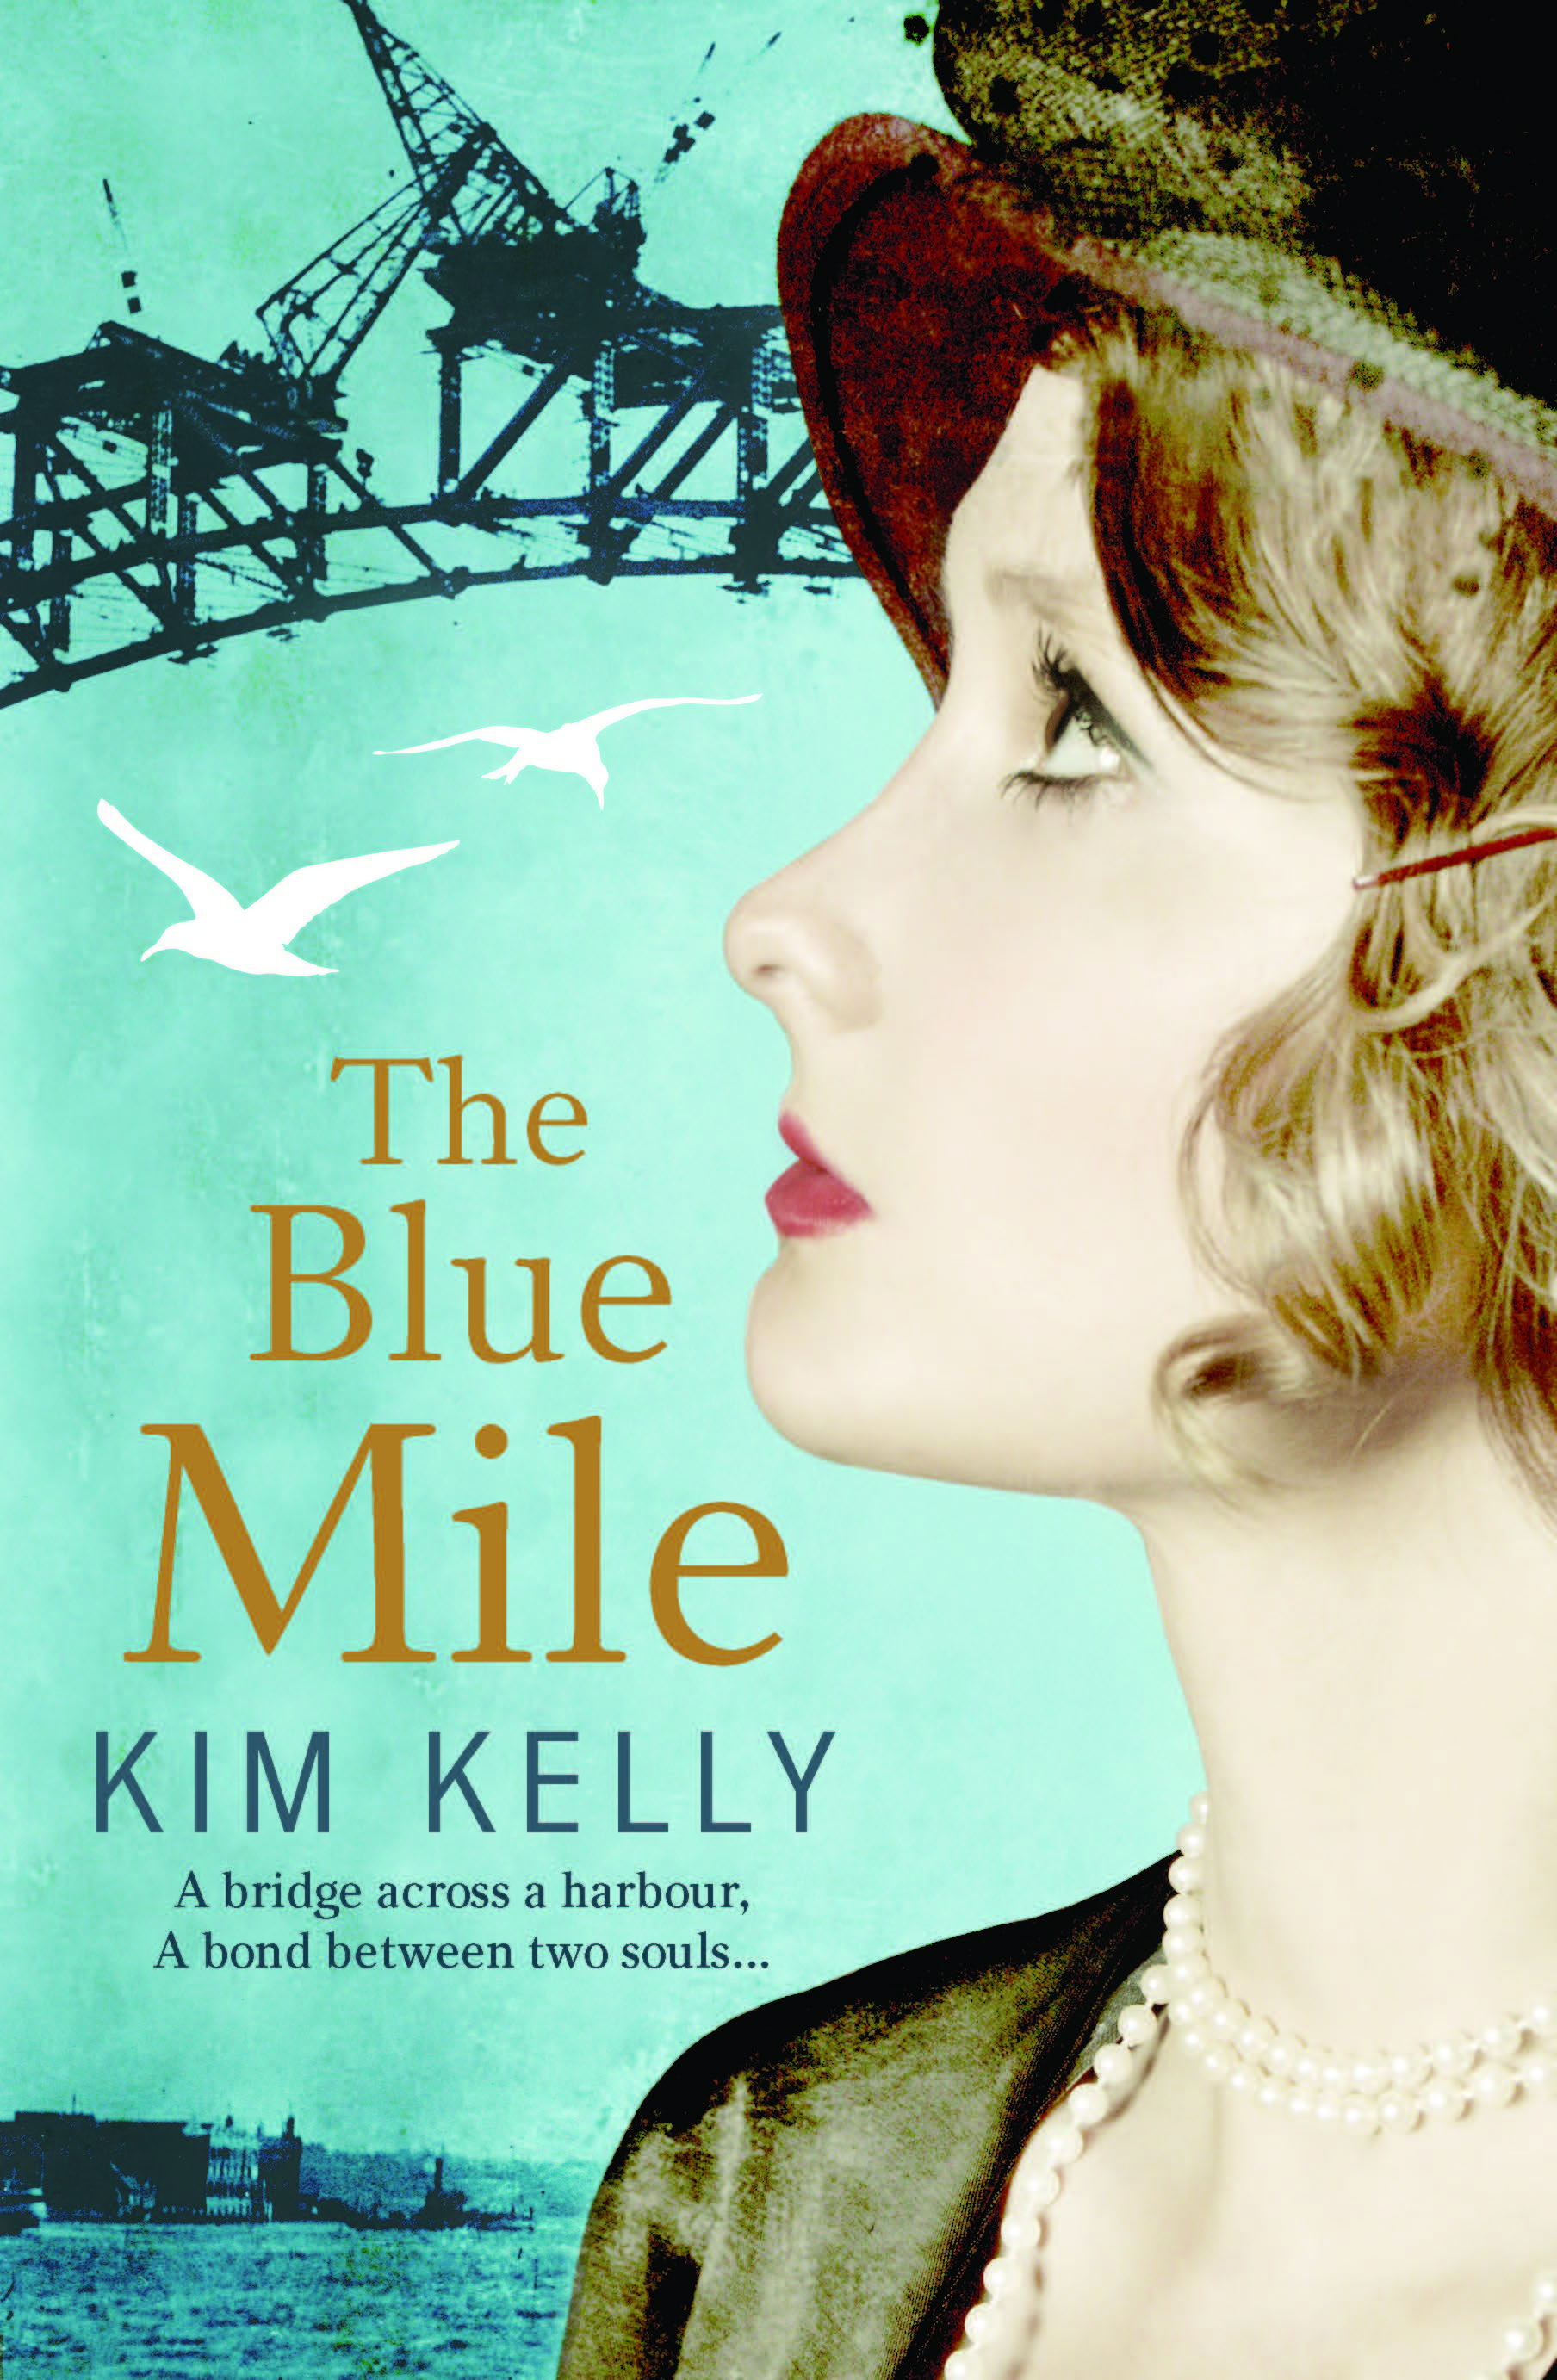 The Blue Mile by Kim Kelly, ISBN: 9781743518069